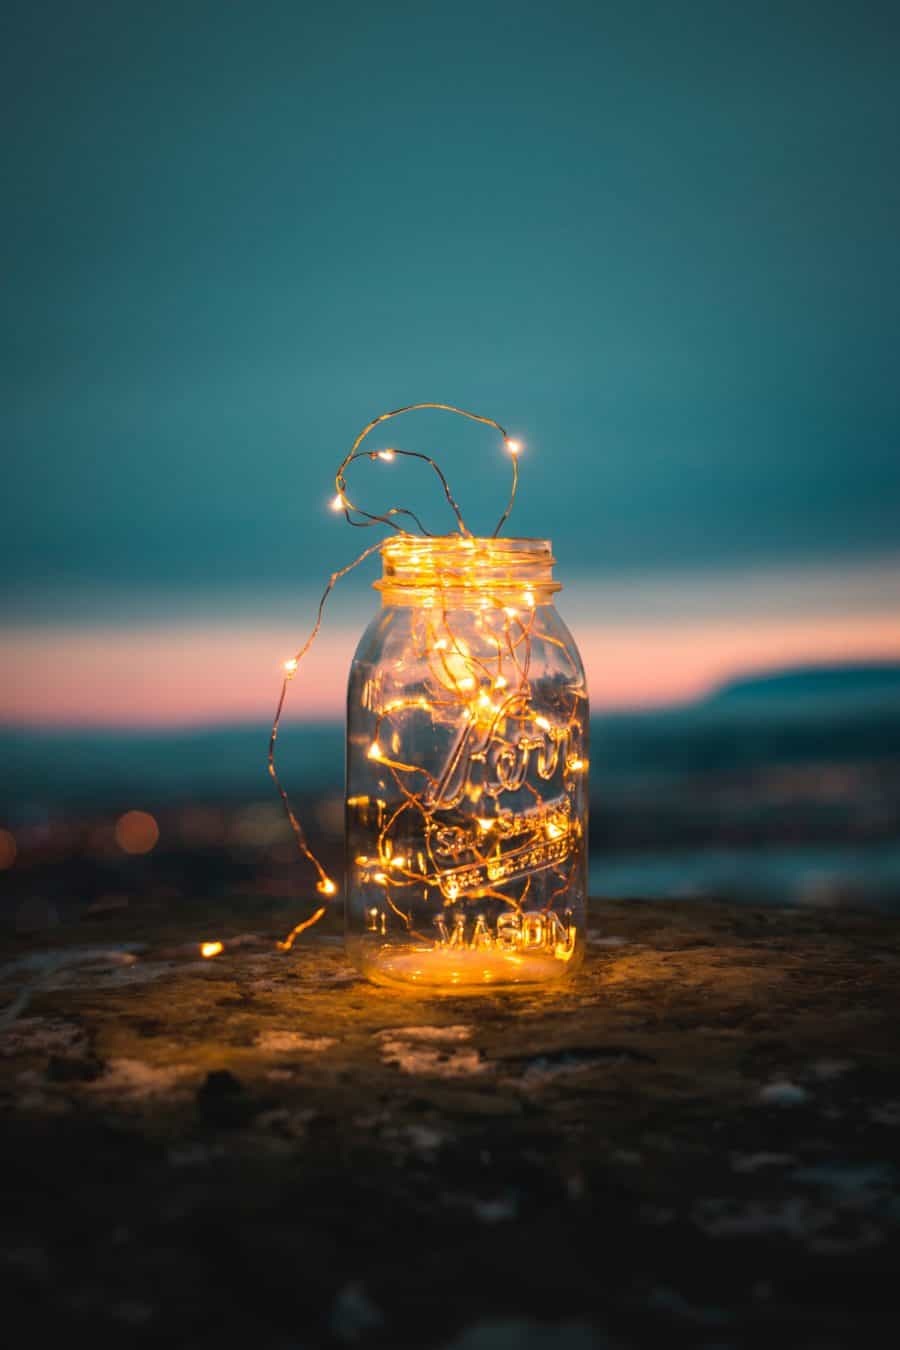 Image of light, fairy lights, jar and glass HD photo by Steve Halama